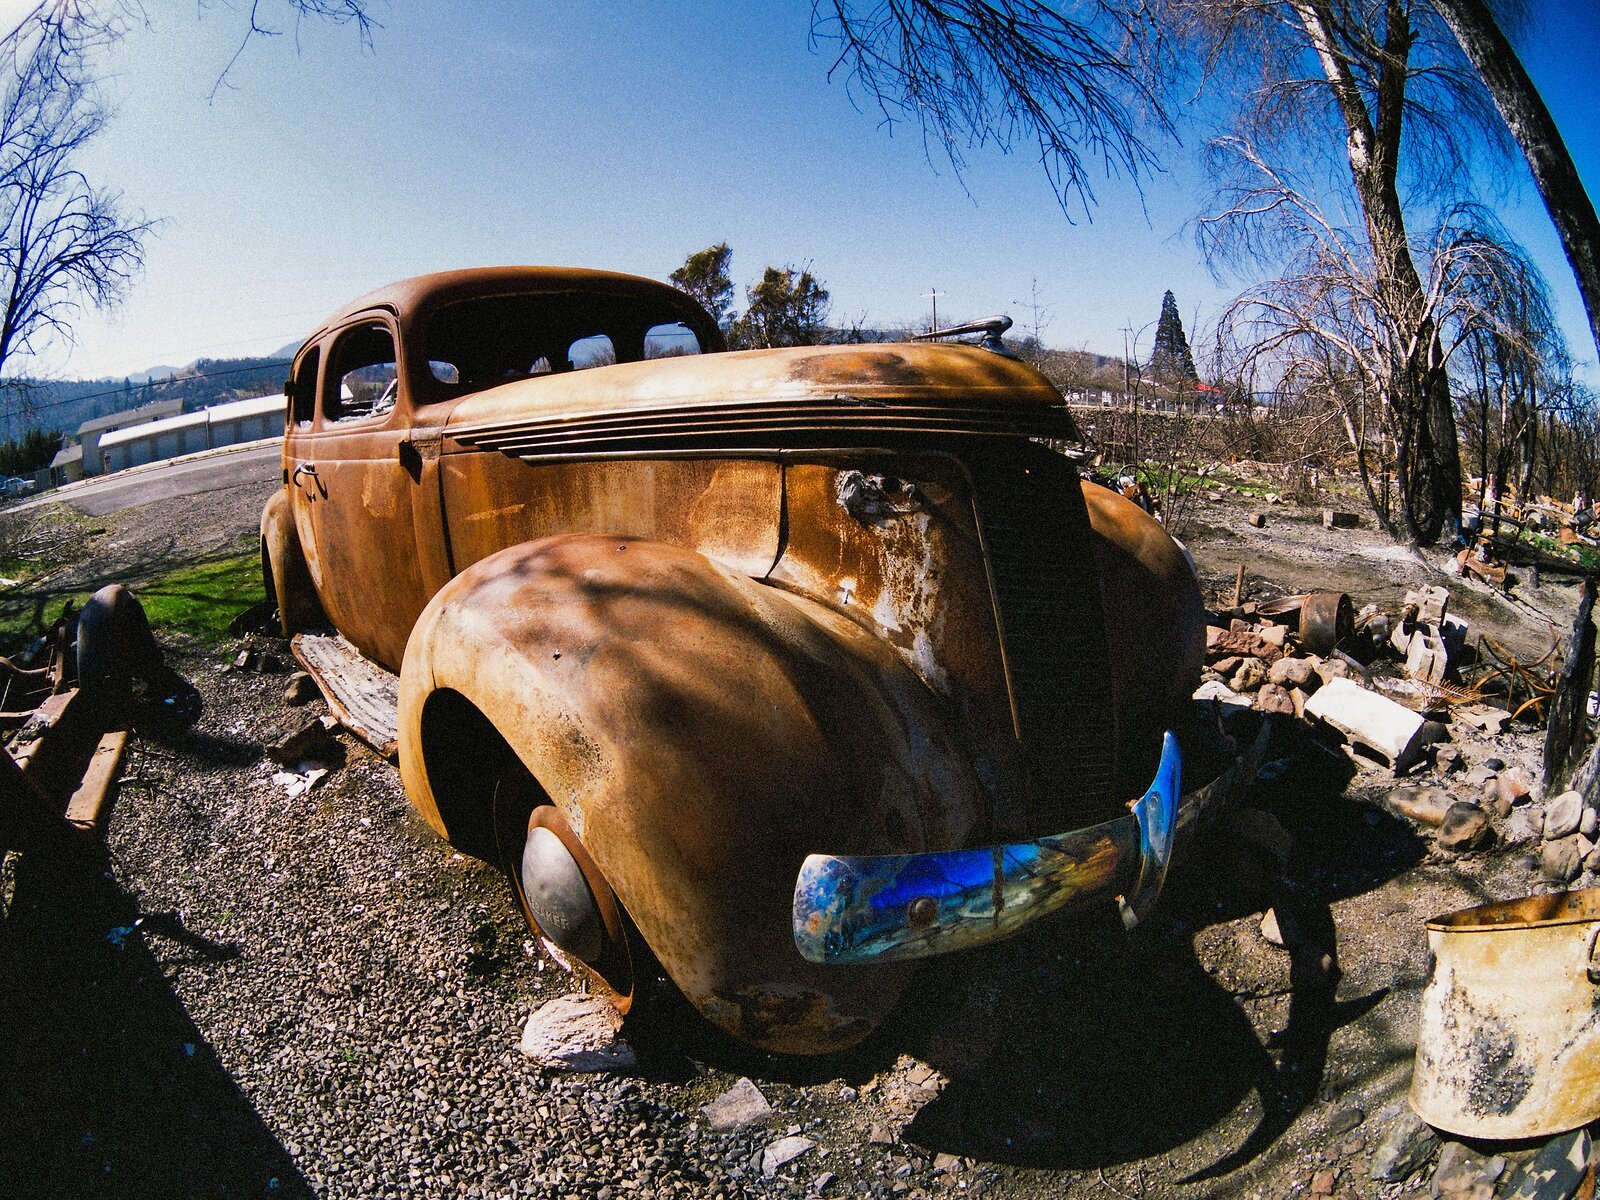 Q7_Mar2_21_fish-eye_burned_jalopy.jpg